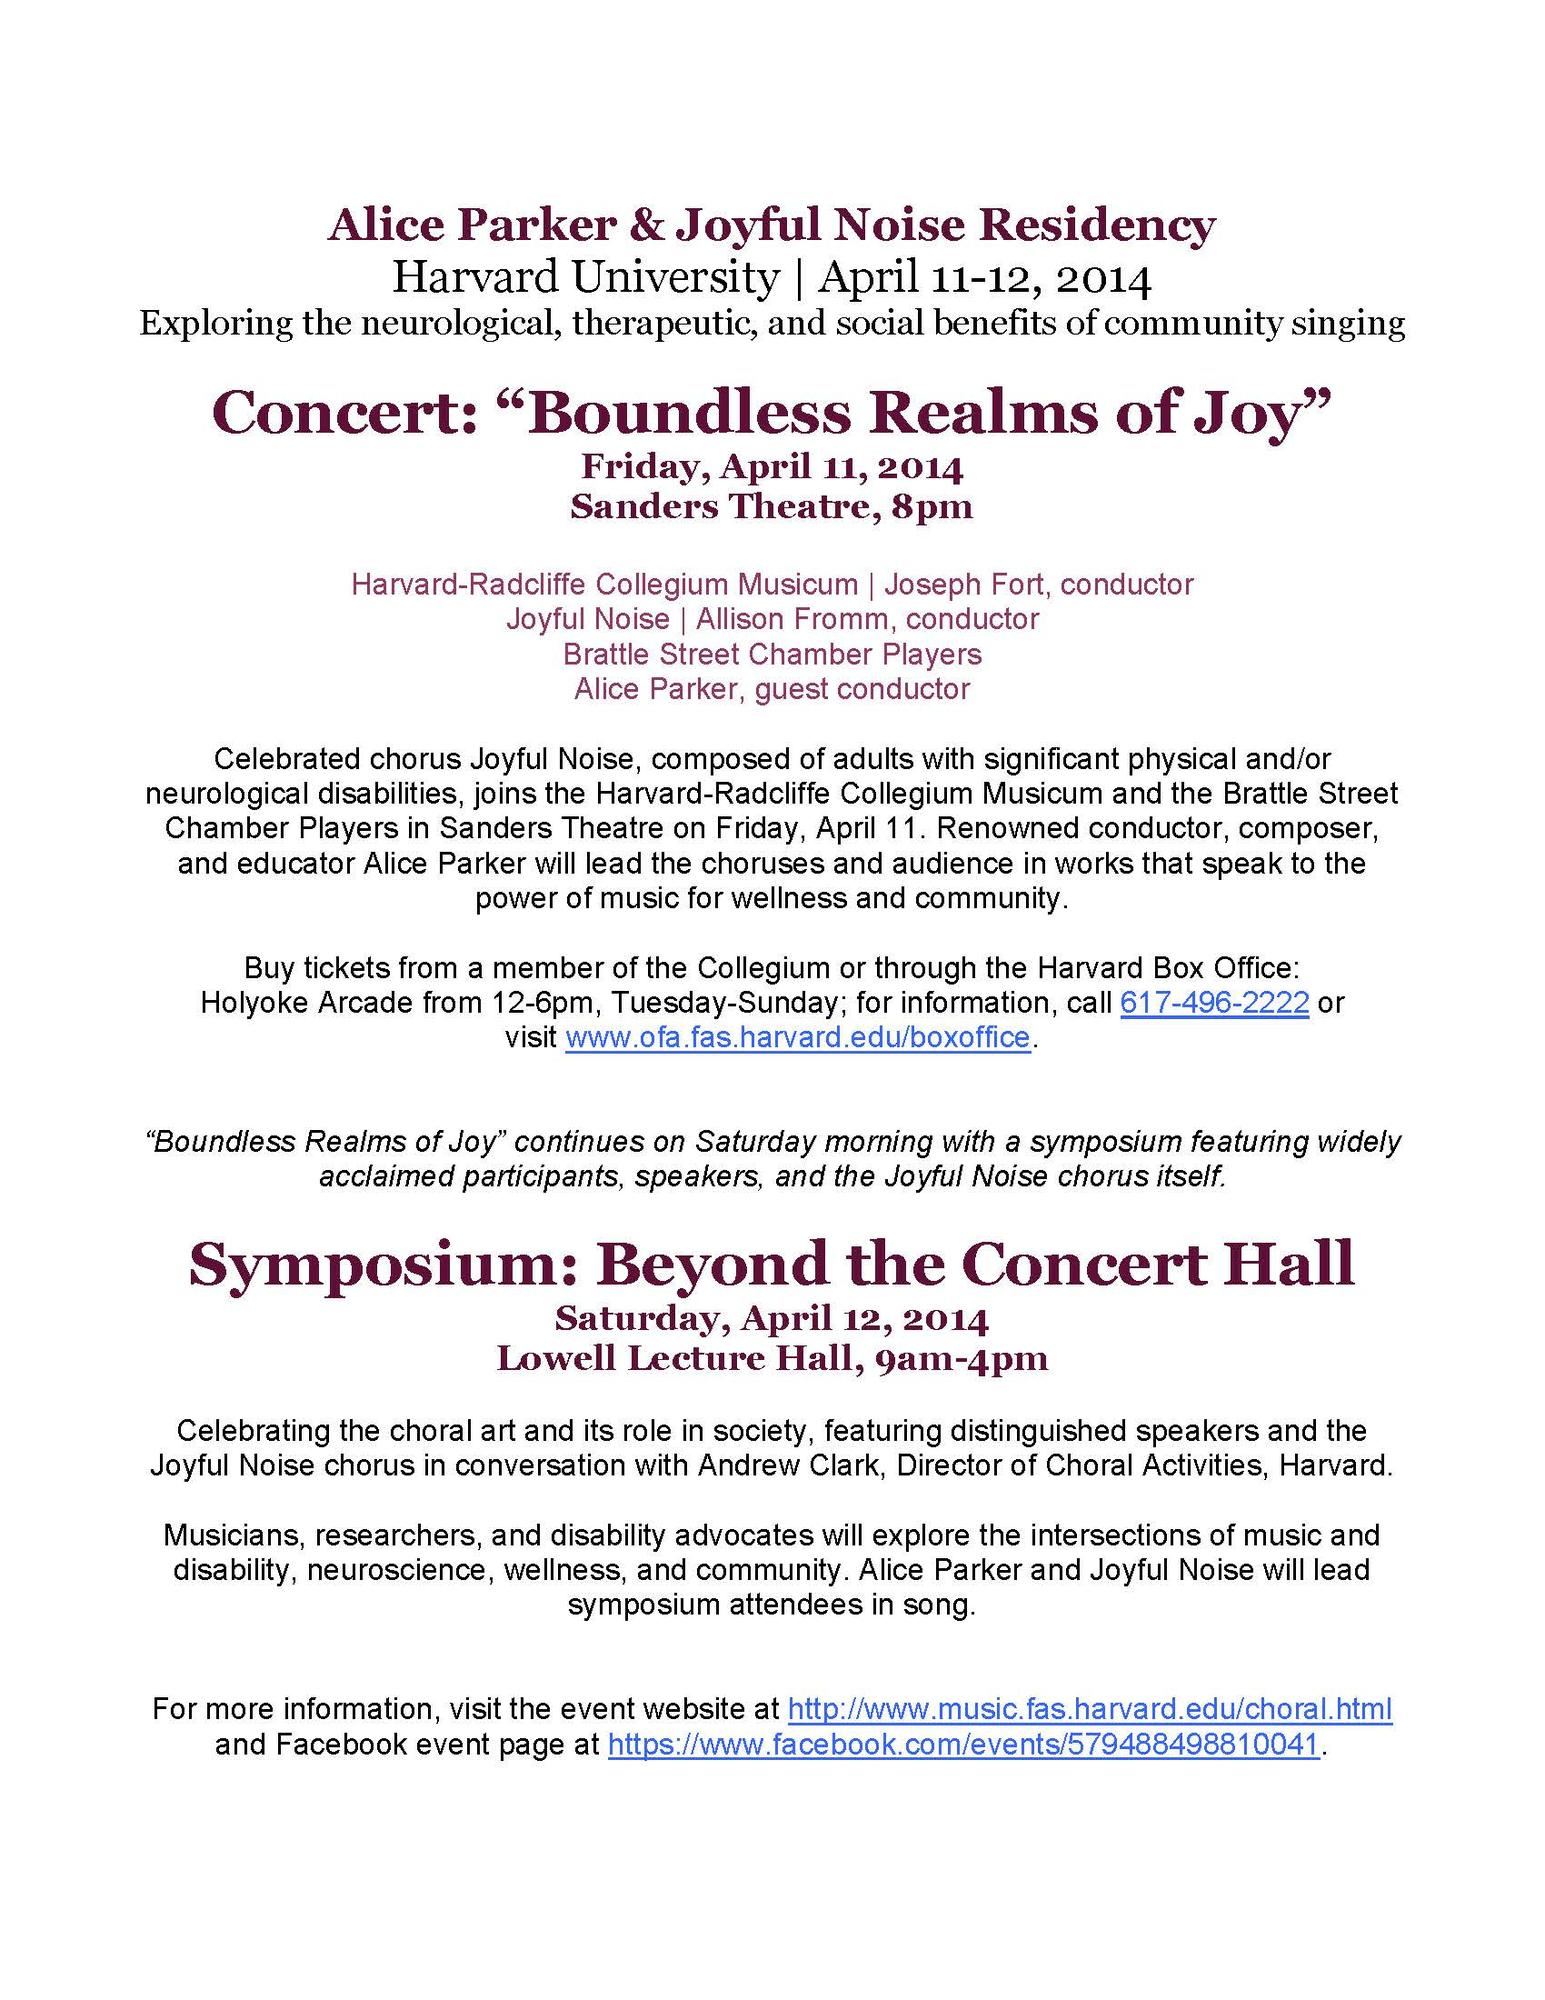 2014.04.11 Boundless Joy Concert and Symposium poster